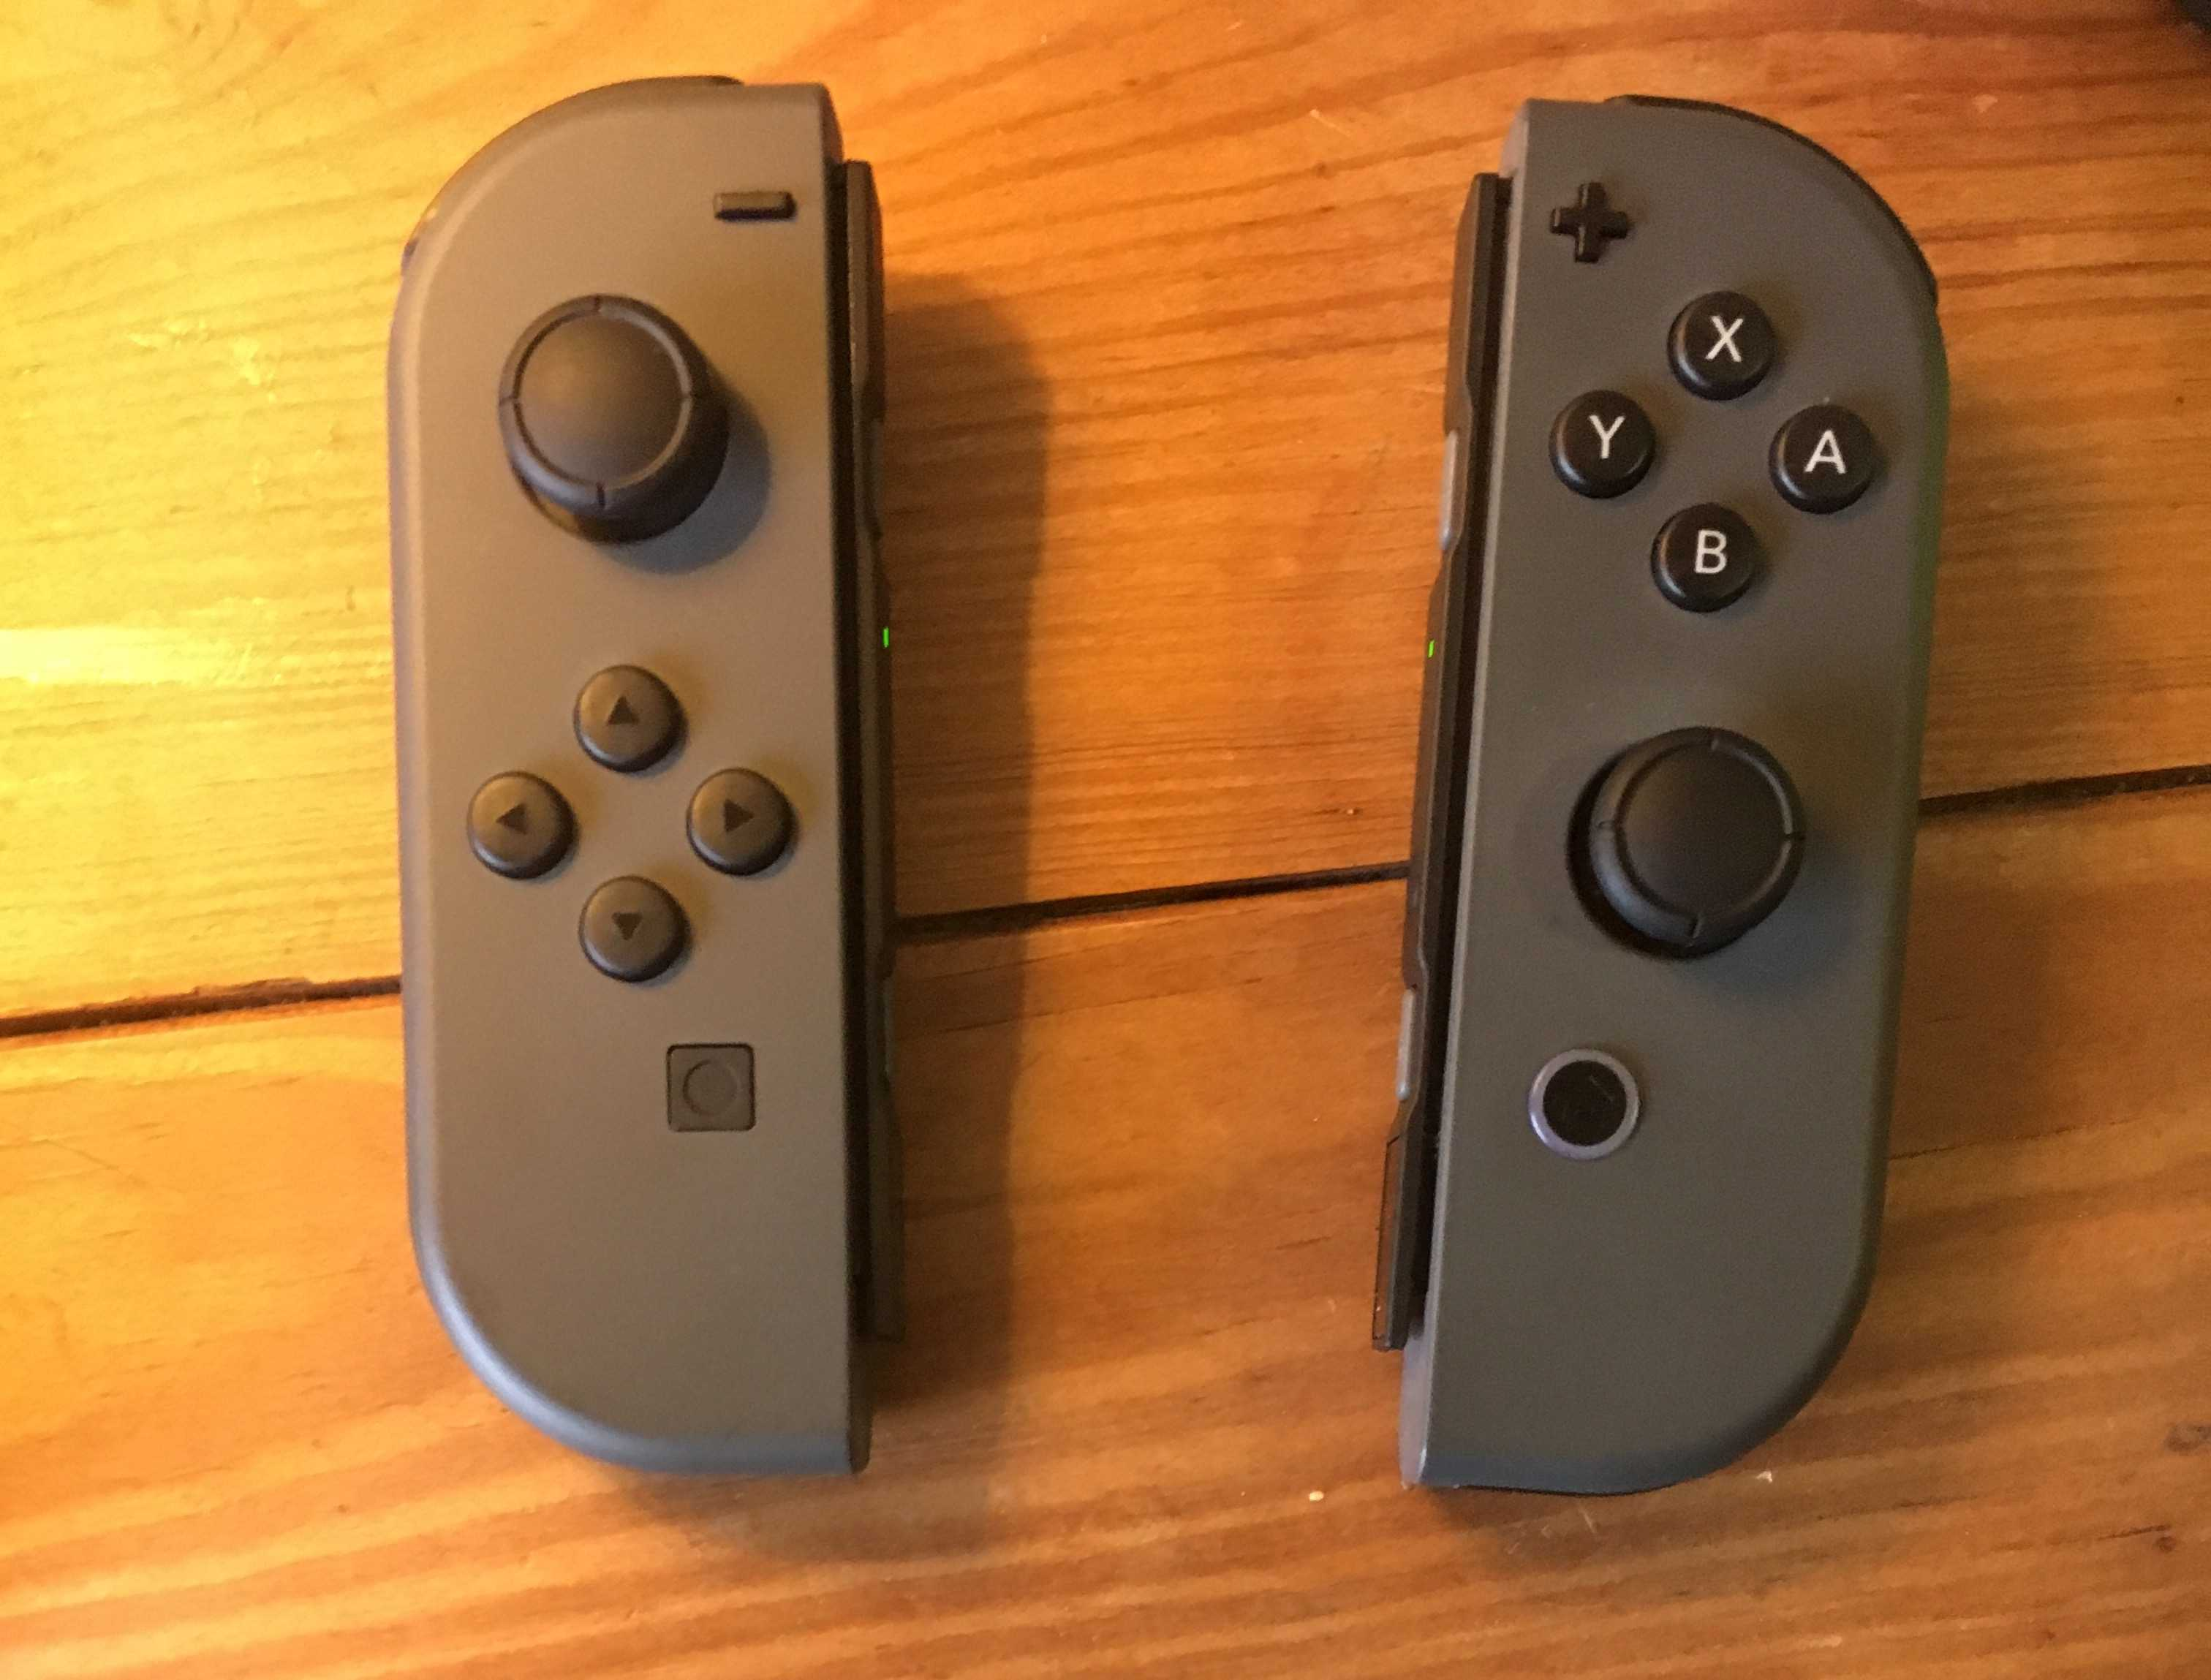 Joy-Con controllers for the Nintendo Switch. These tiny controllers can combine to create one large controller in multiplayer mode.